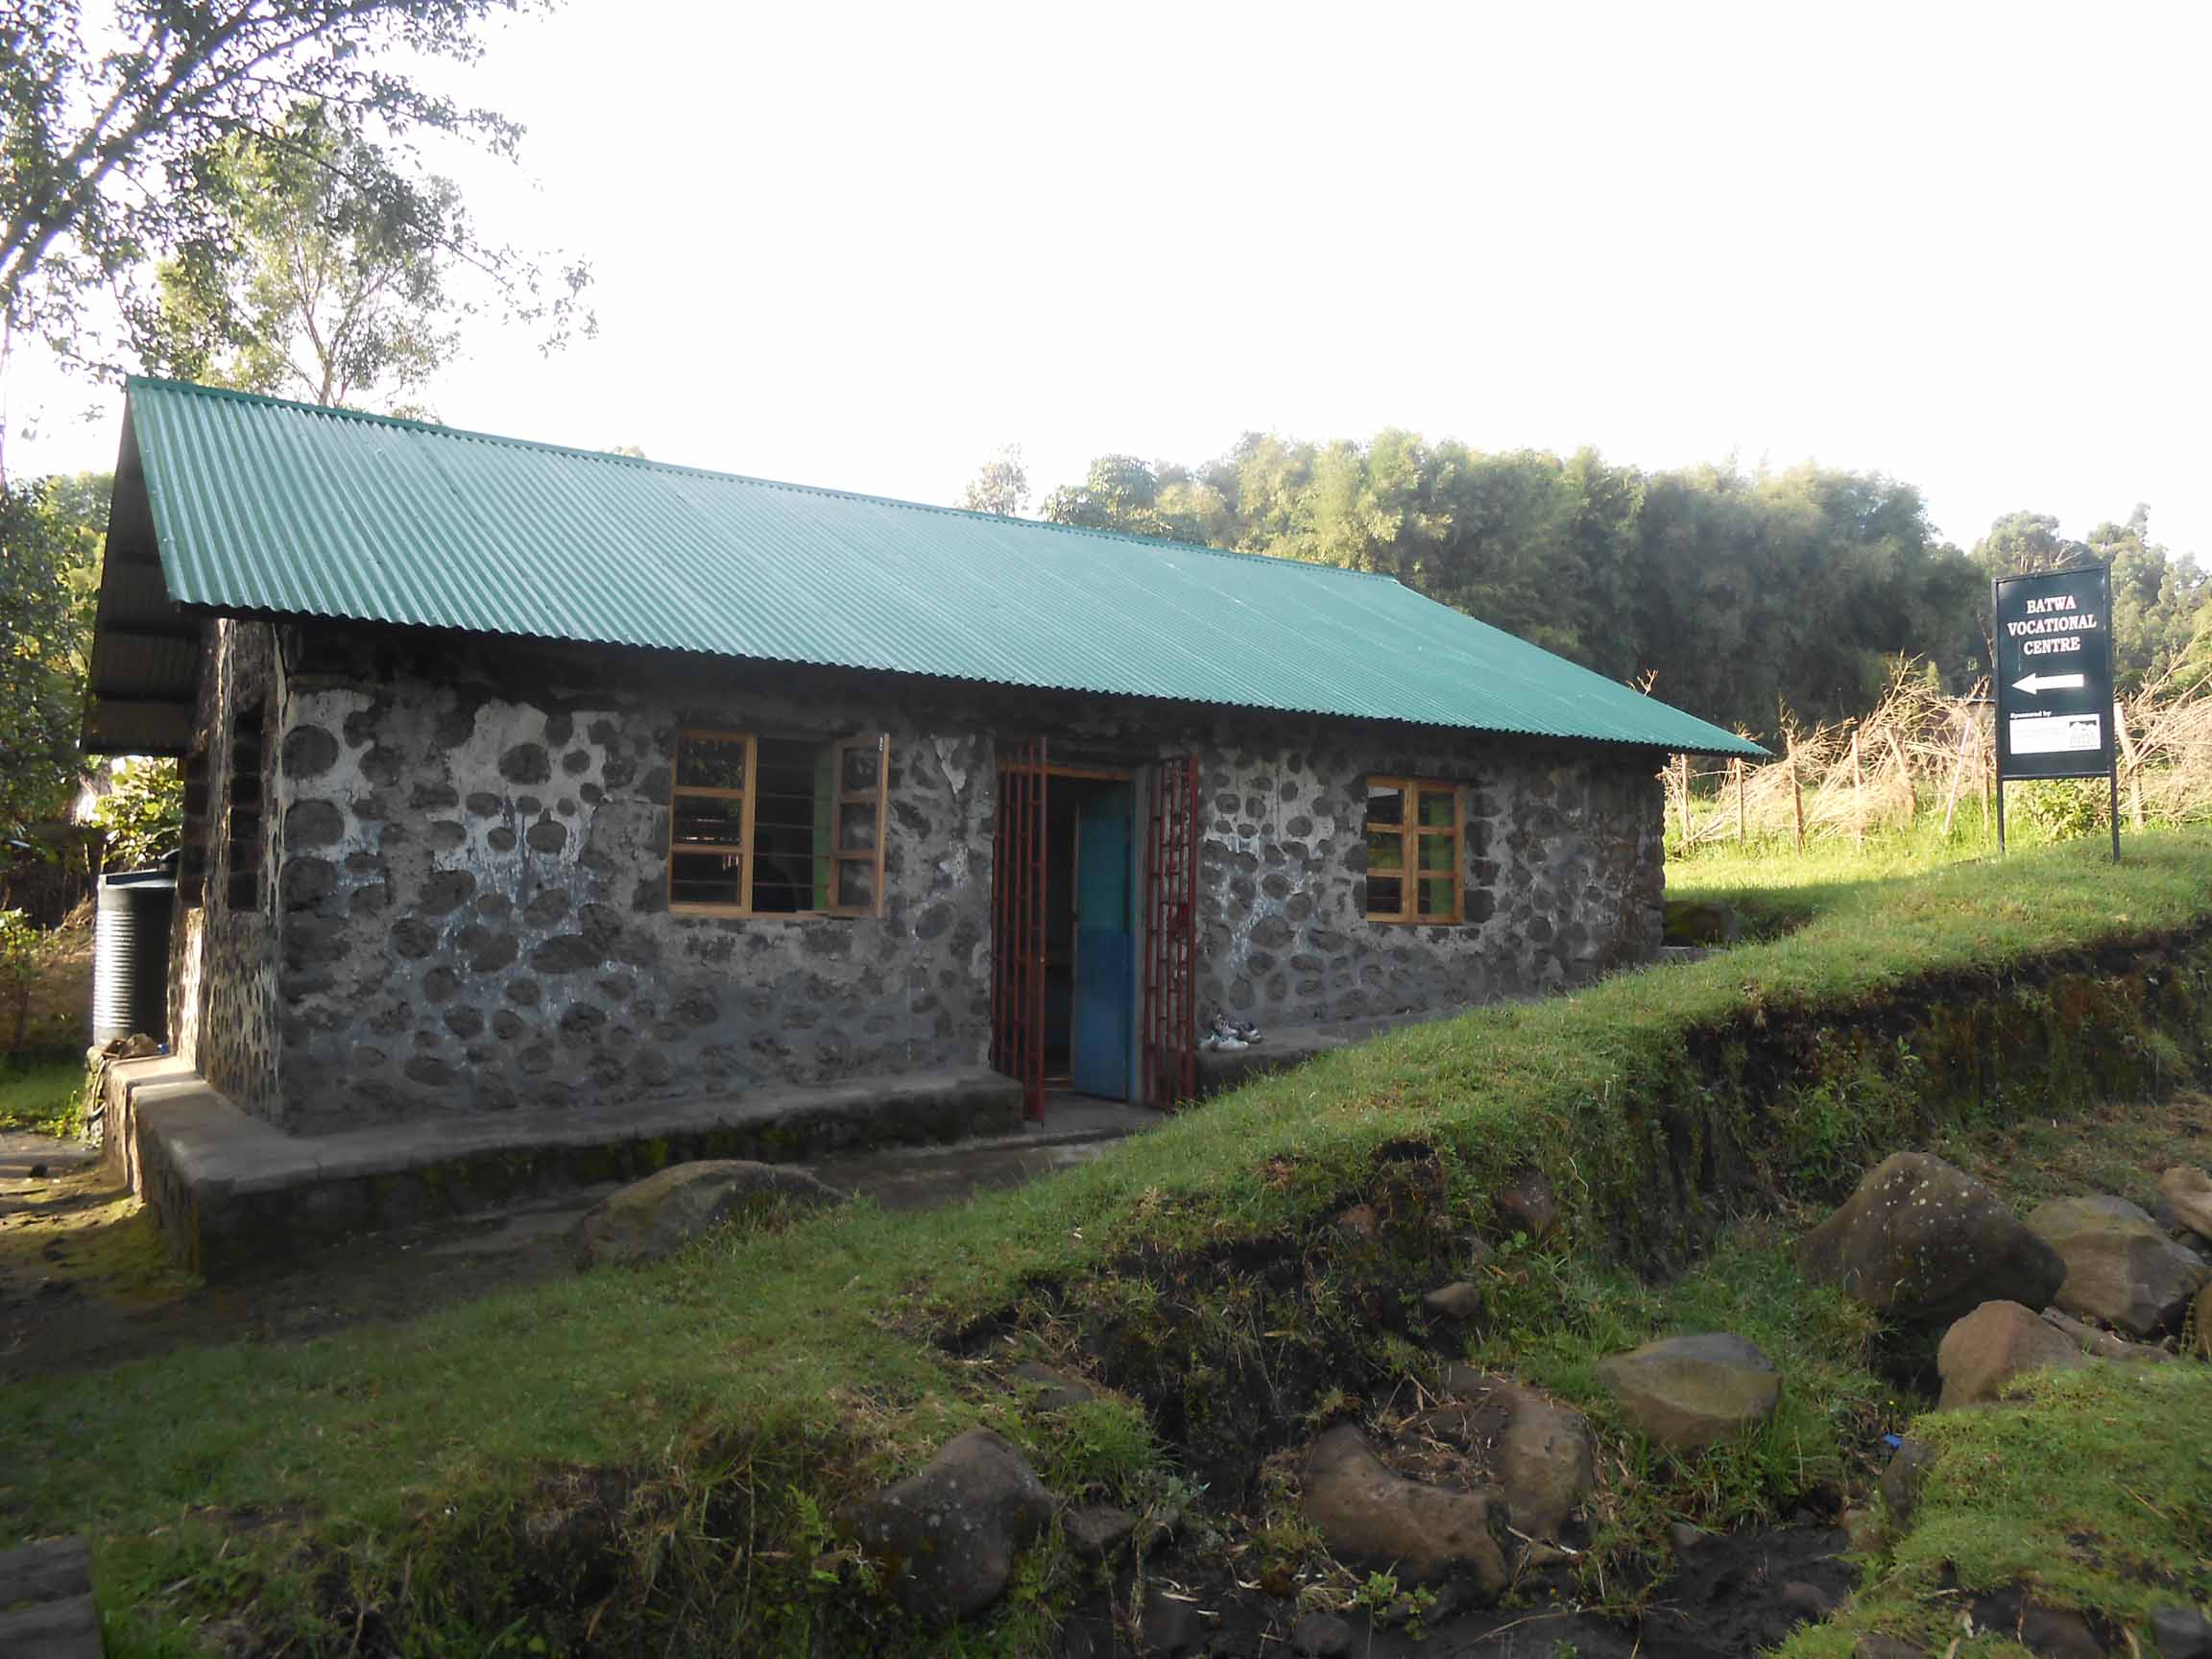 Batwa Vocational Center.